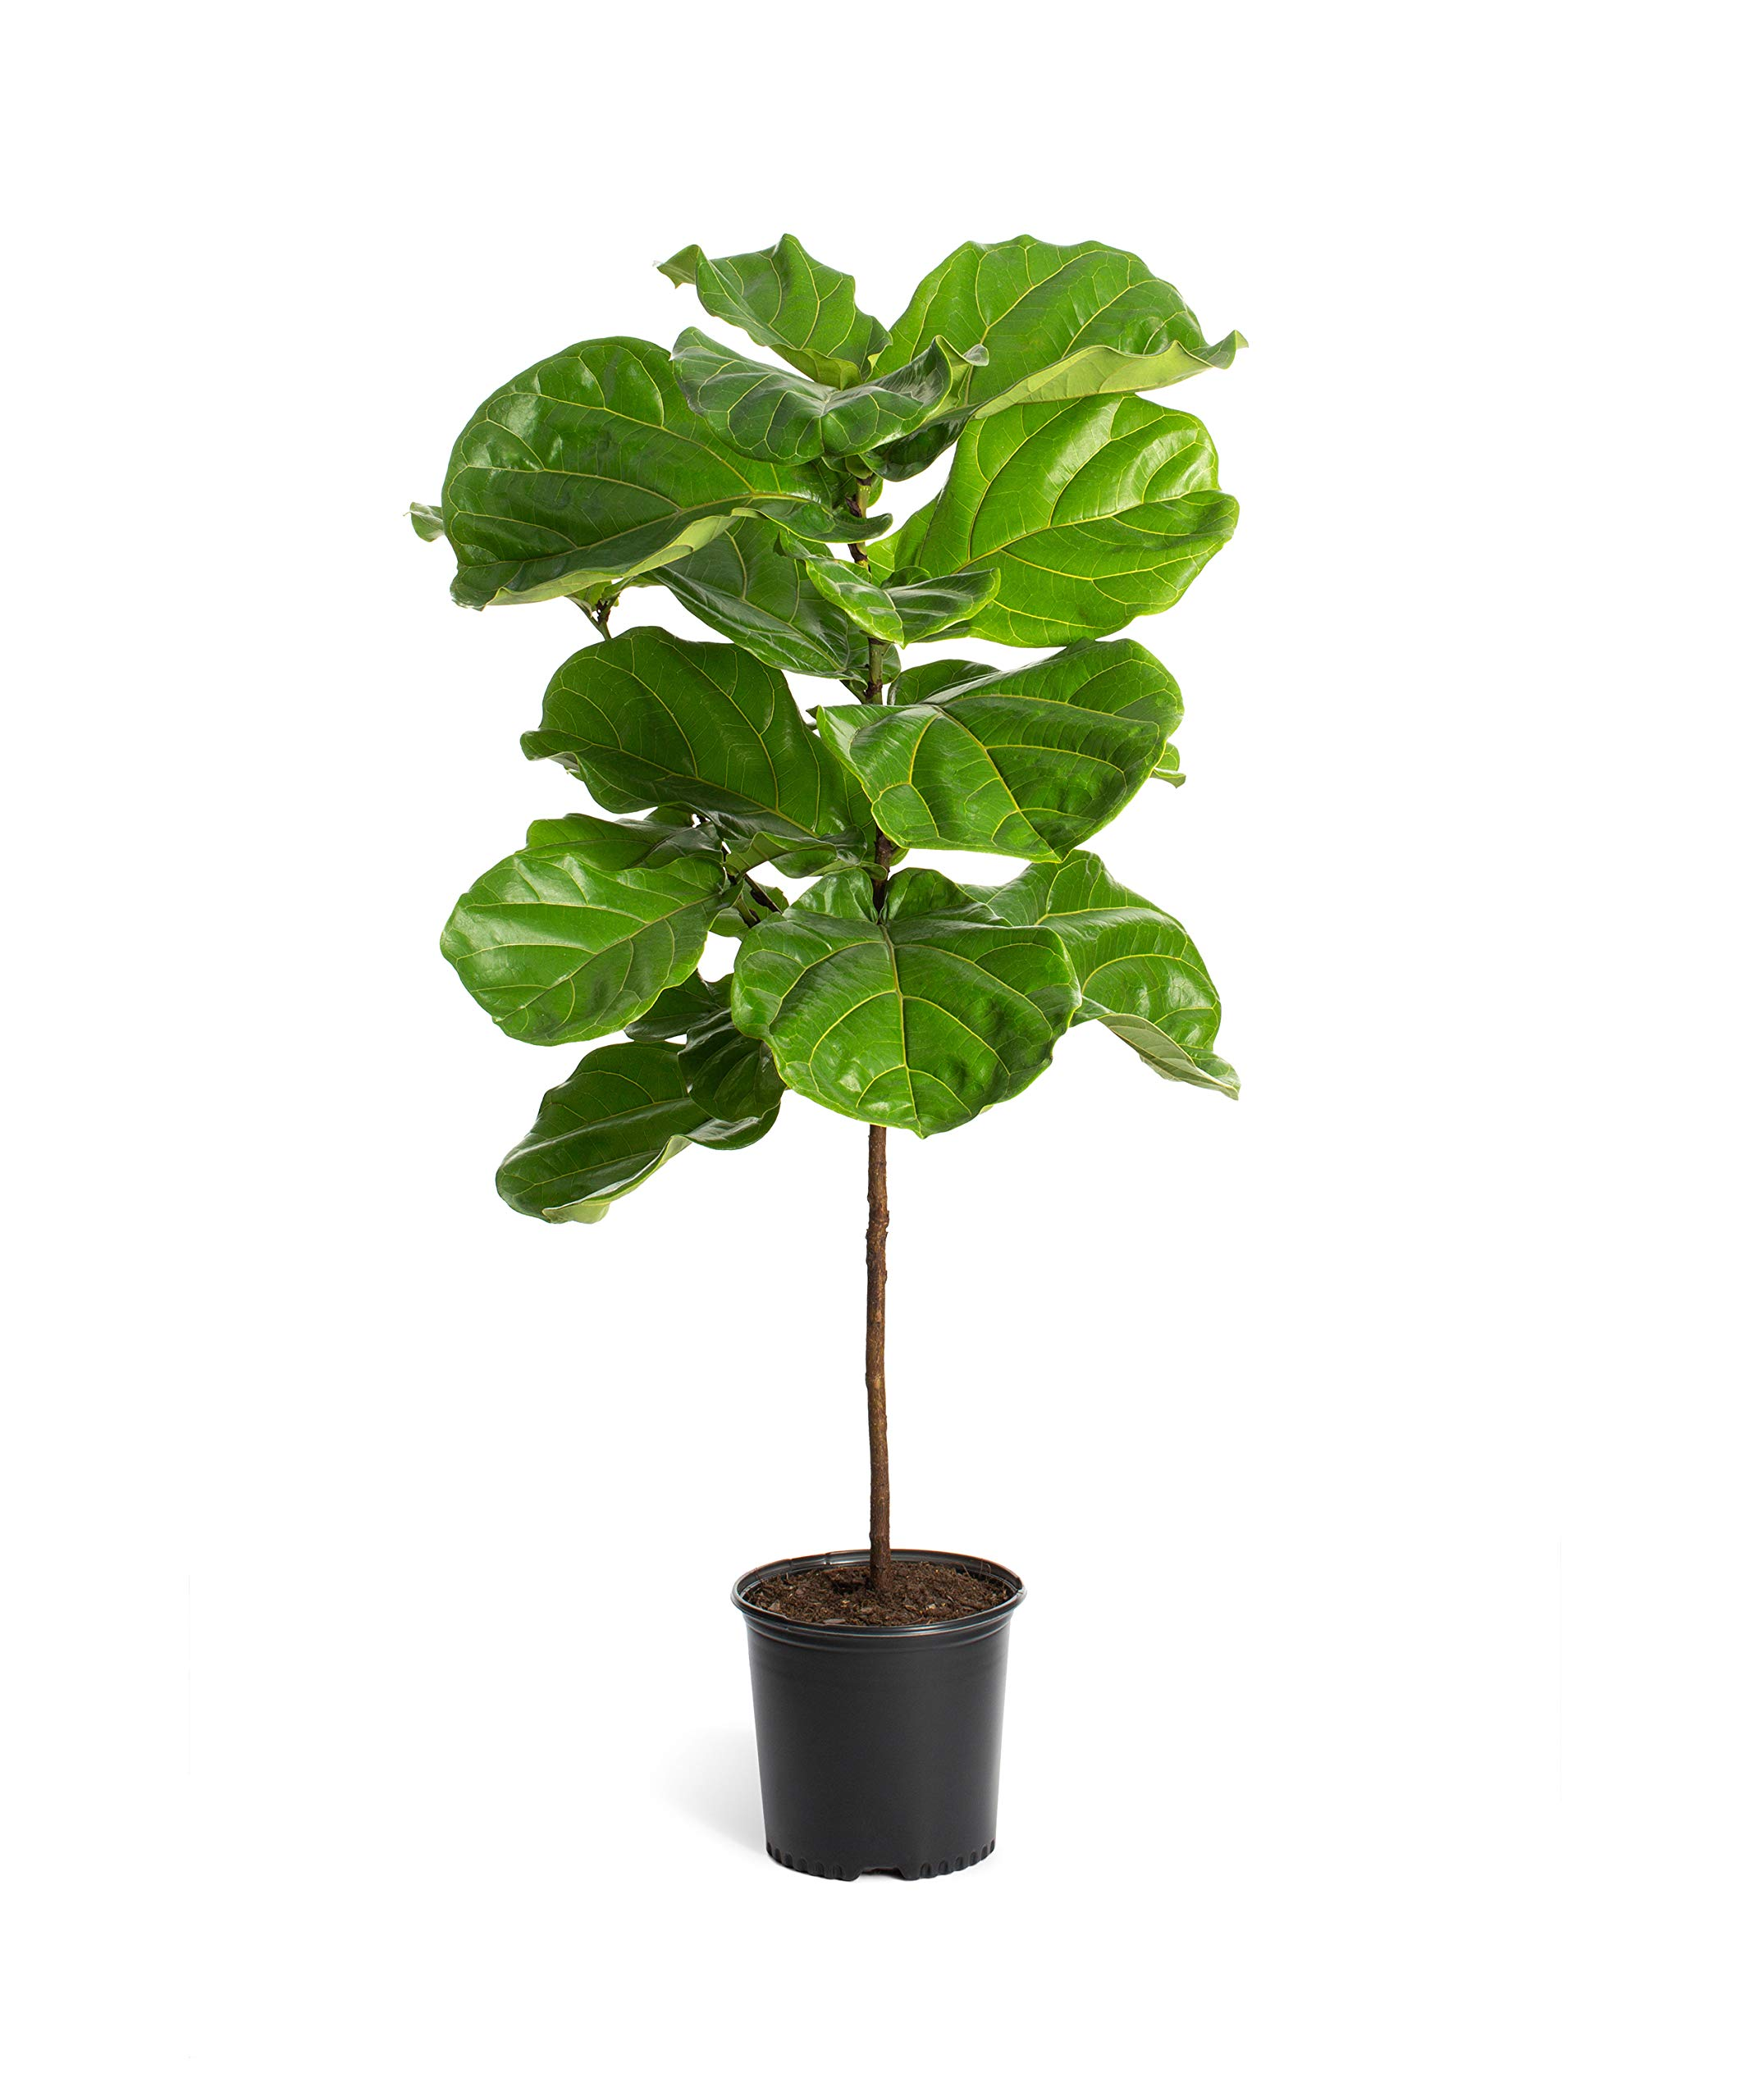 Fiddle Leaf Fig Tree in a 3 Gallon Pot- The Most Popular Indoor Fig Tree- Tall, Live Indoor Fig Trees - Not Artificial Plants | Cannot Ship to AZ by Brighter Blooms